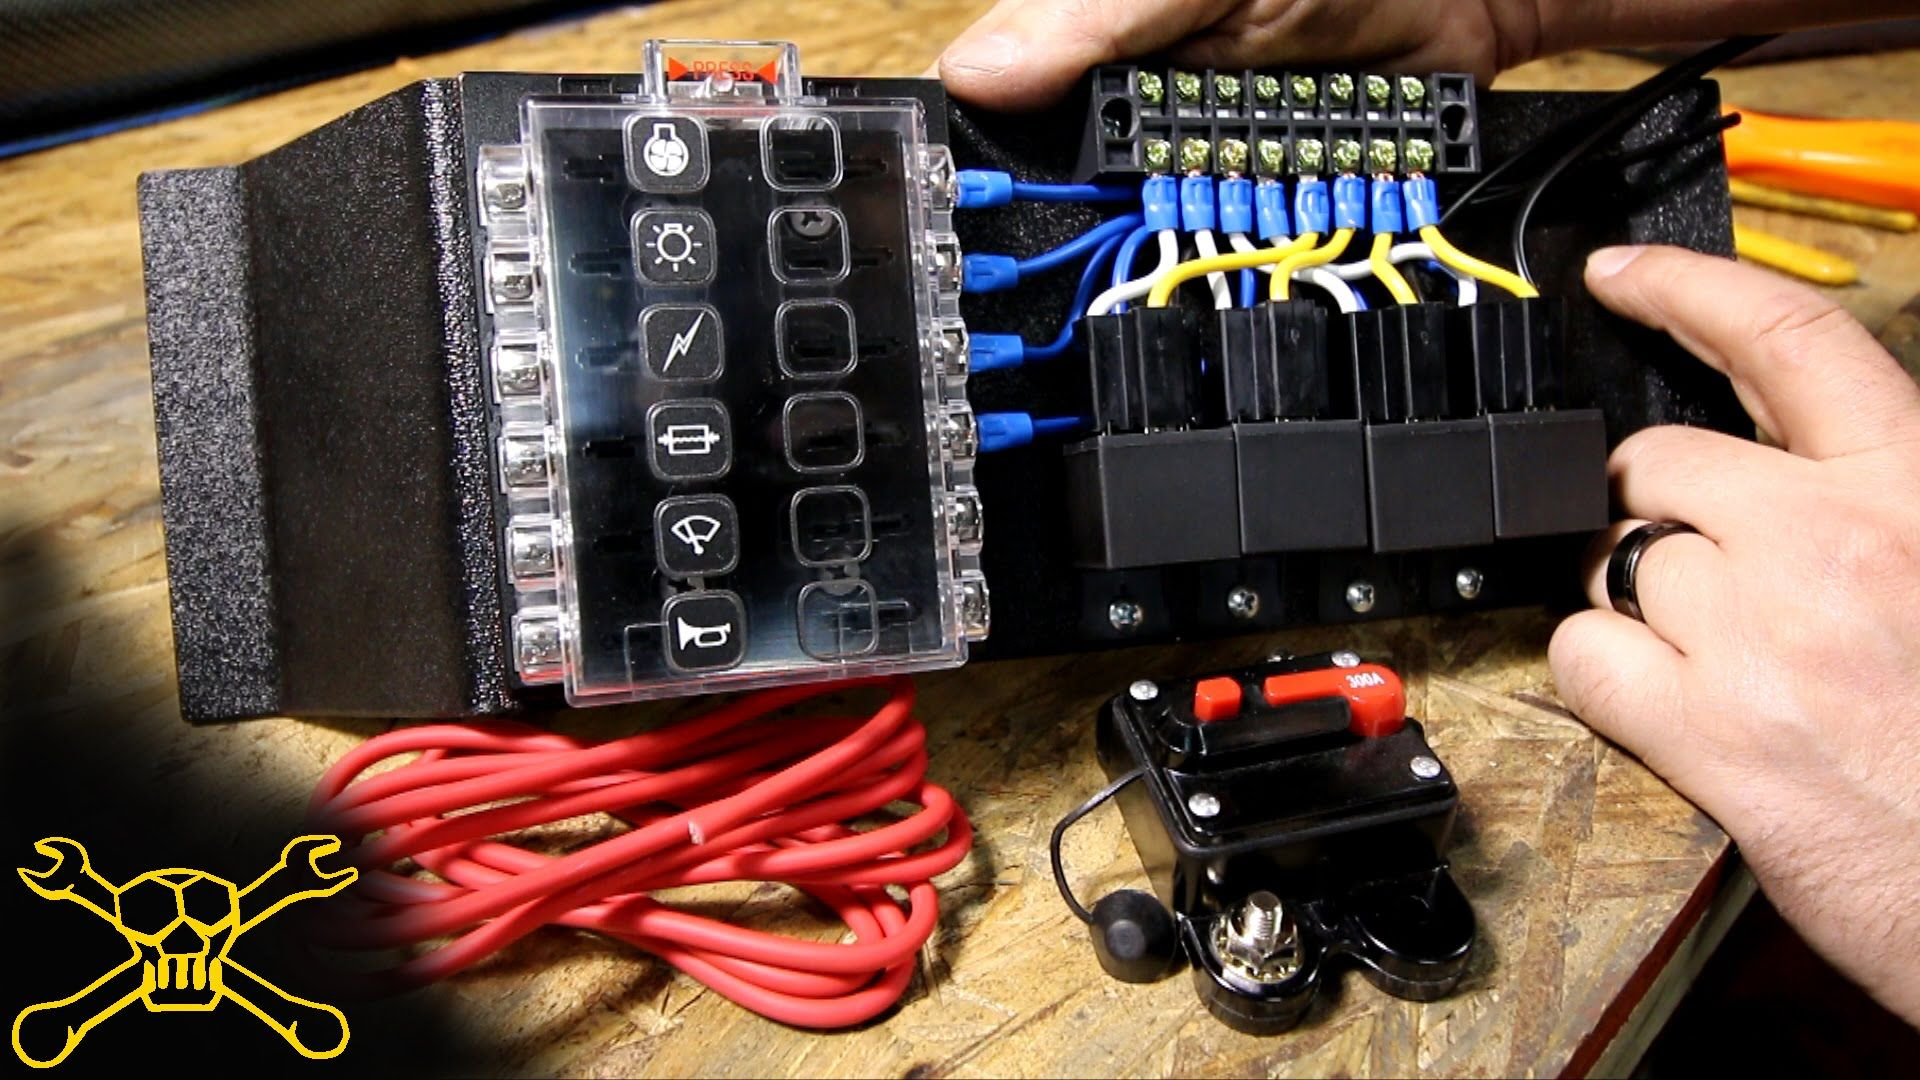 fuse box circuit builder how to make a power relay / fuse block | automotive wiring ...